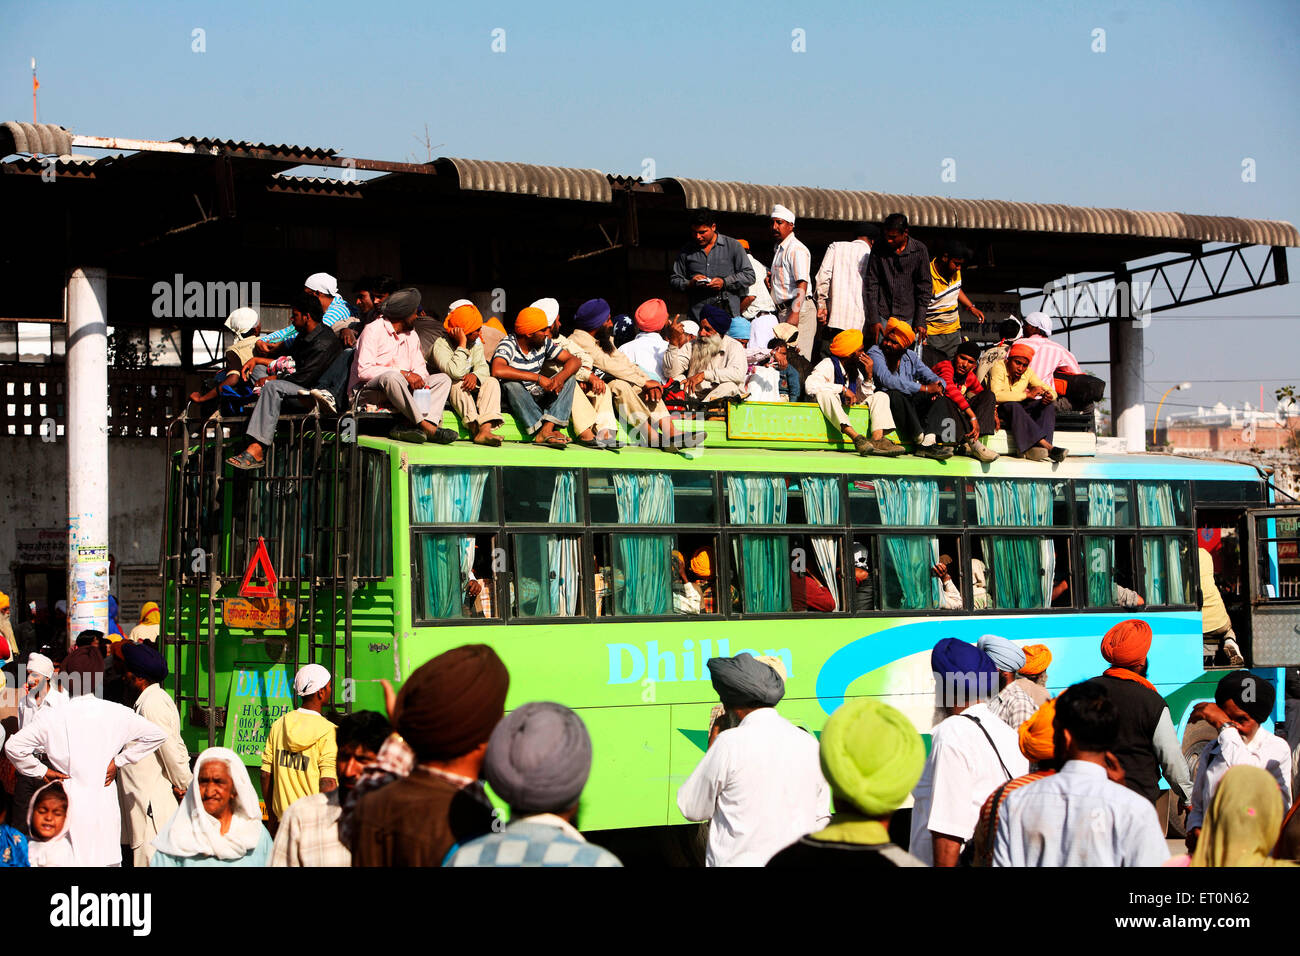 People travelling on rooftop of bus in Punjab ; India - Stock Image